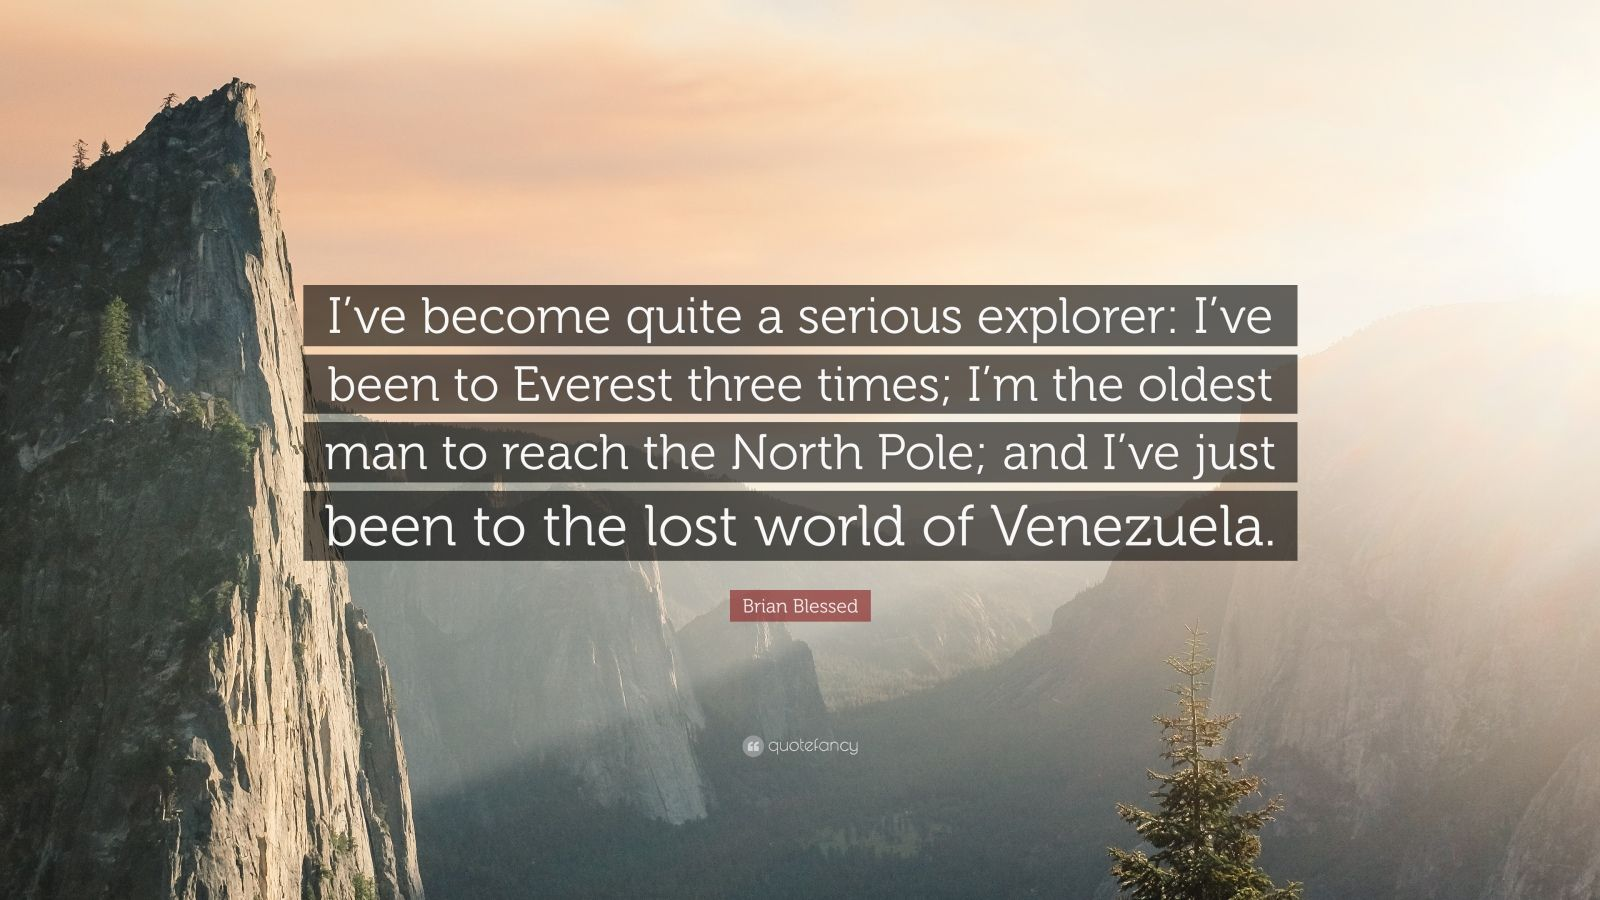 """Brian Blessed Quote: """"I've become quite a serious explorer: I've been to Everest three times; I'm the oldest man to reach the North Pole; and I've just been to the lost world of Venezuela."""""""